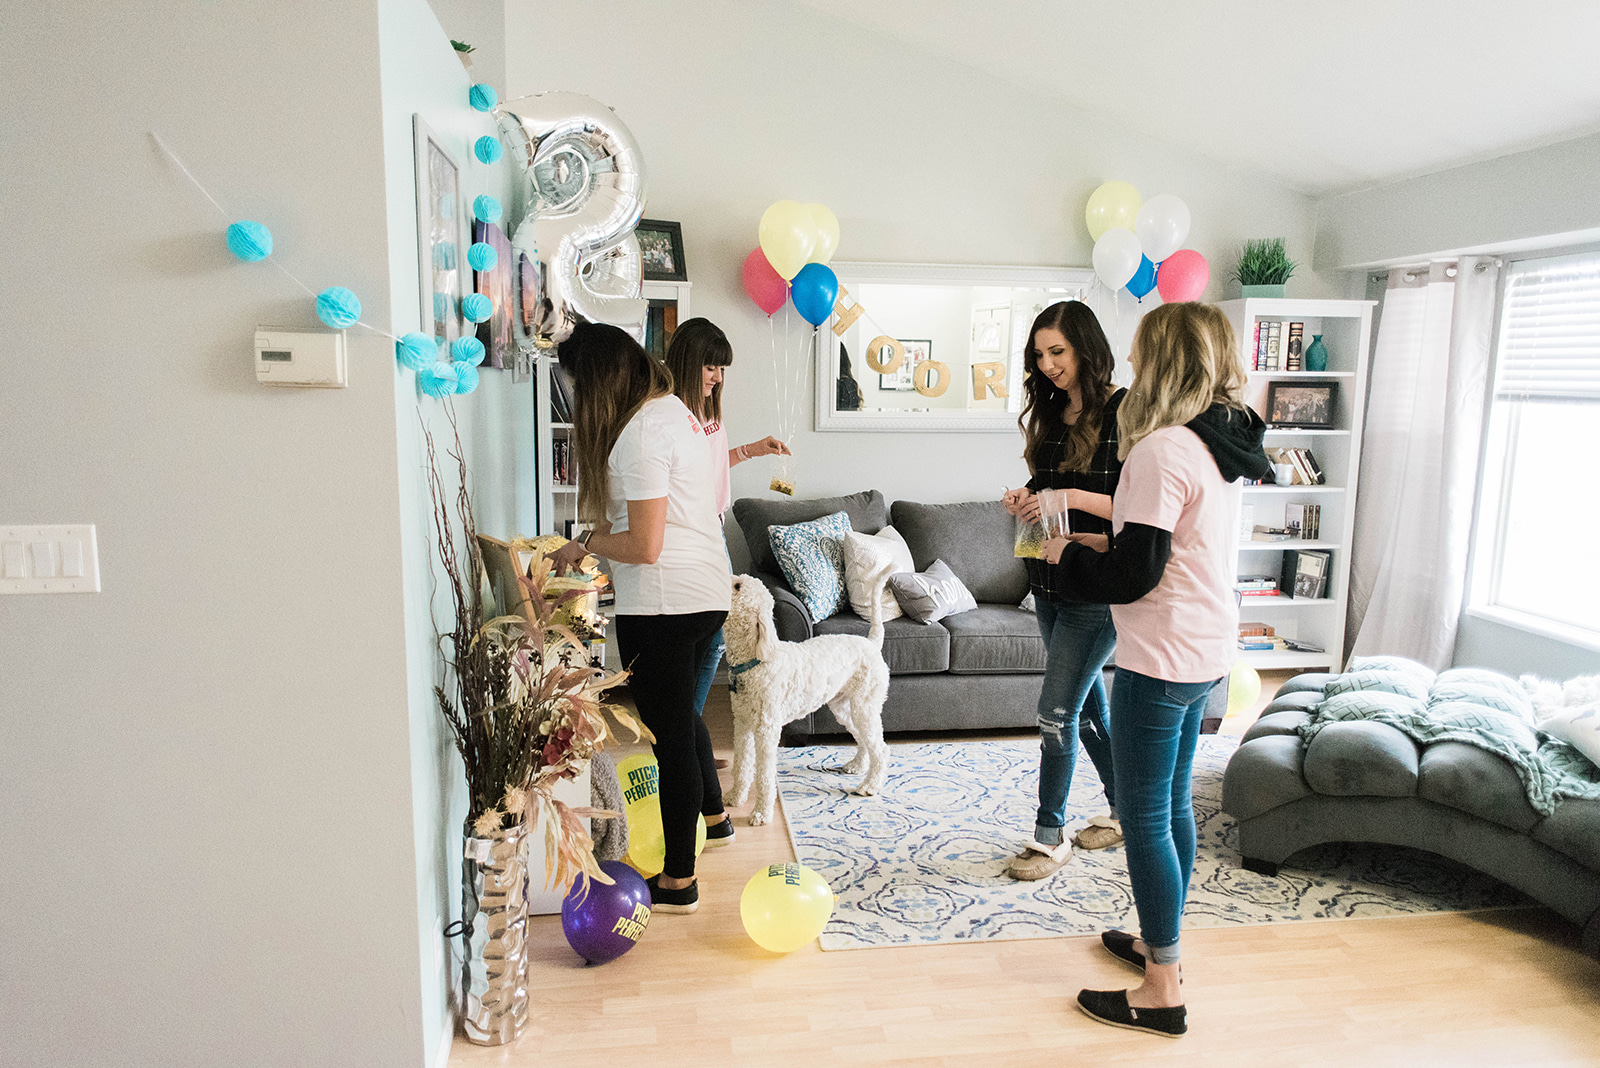 Pitch Perfect Themed Birthday Party - adult birthday party idea with trail mix bar // Hey There, Chelsie